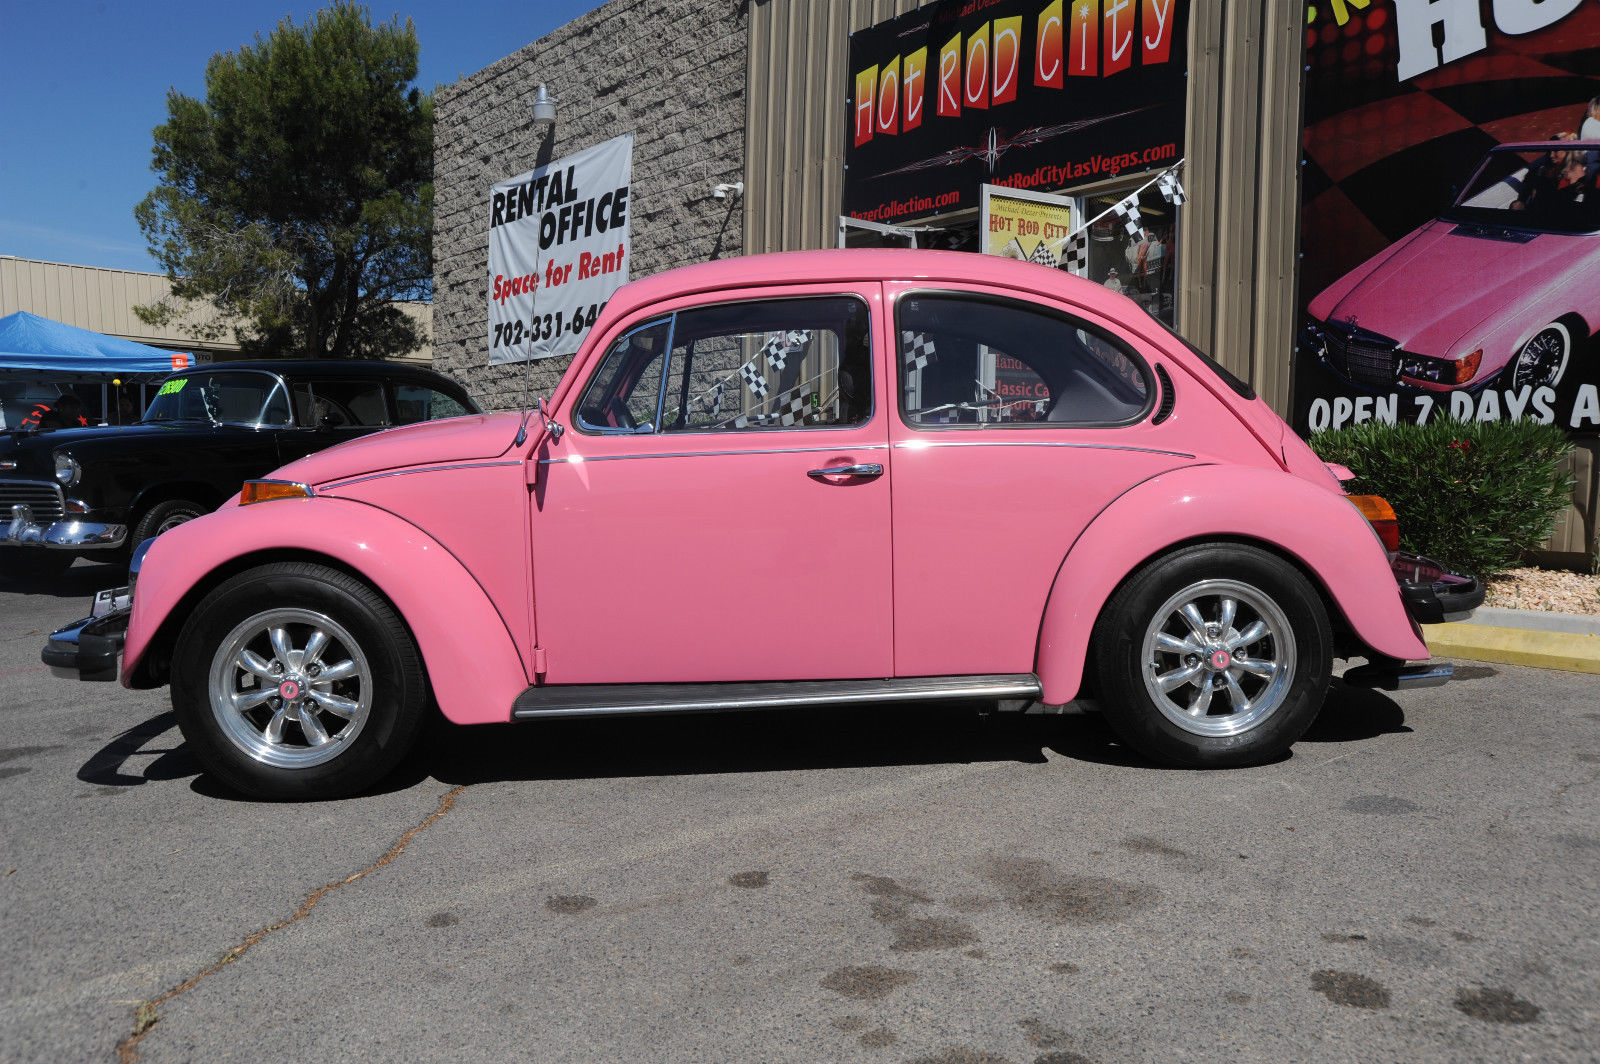 1977 Volkswagen Beetle - Classic - Hot Rod City - Hot Rod City